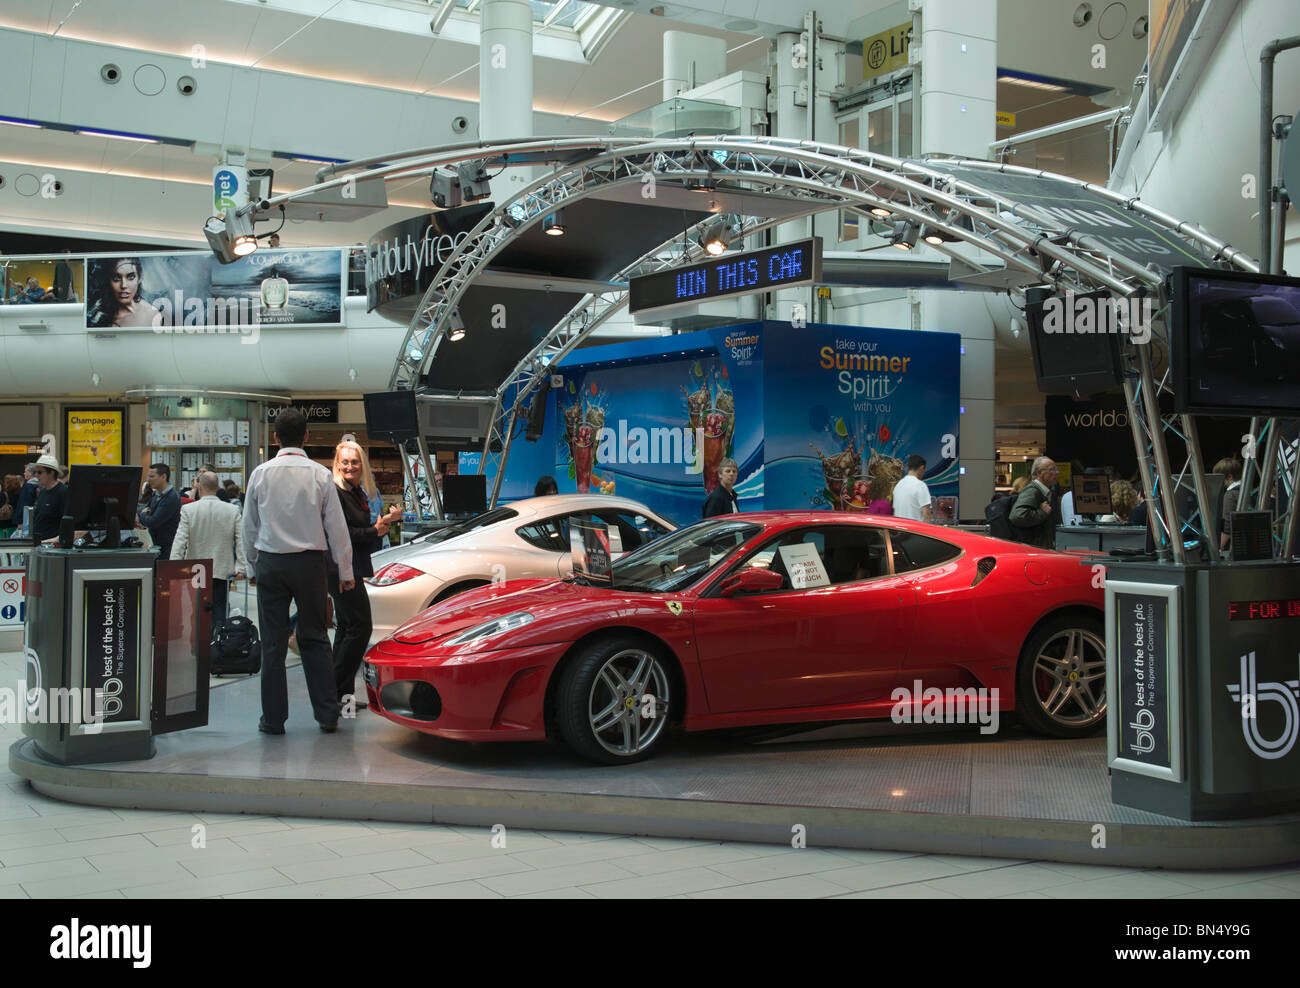 London Gatwick Airport South Terminal - luxury car lottery or draw promotion ticket sales July 2010 - Stock Image